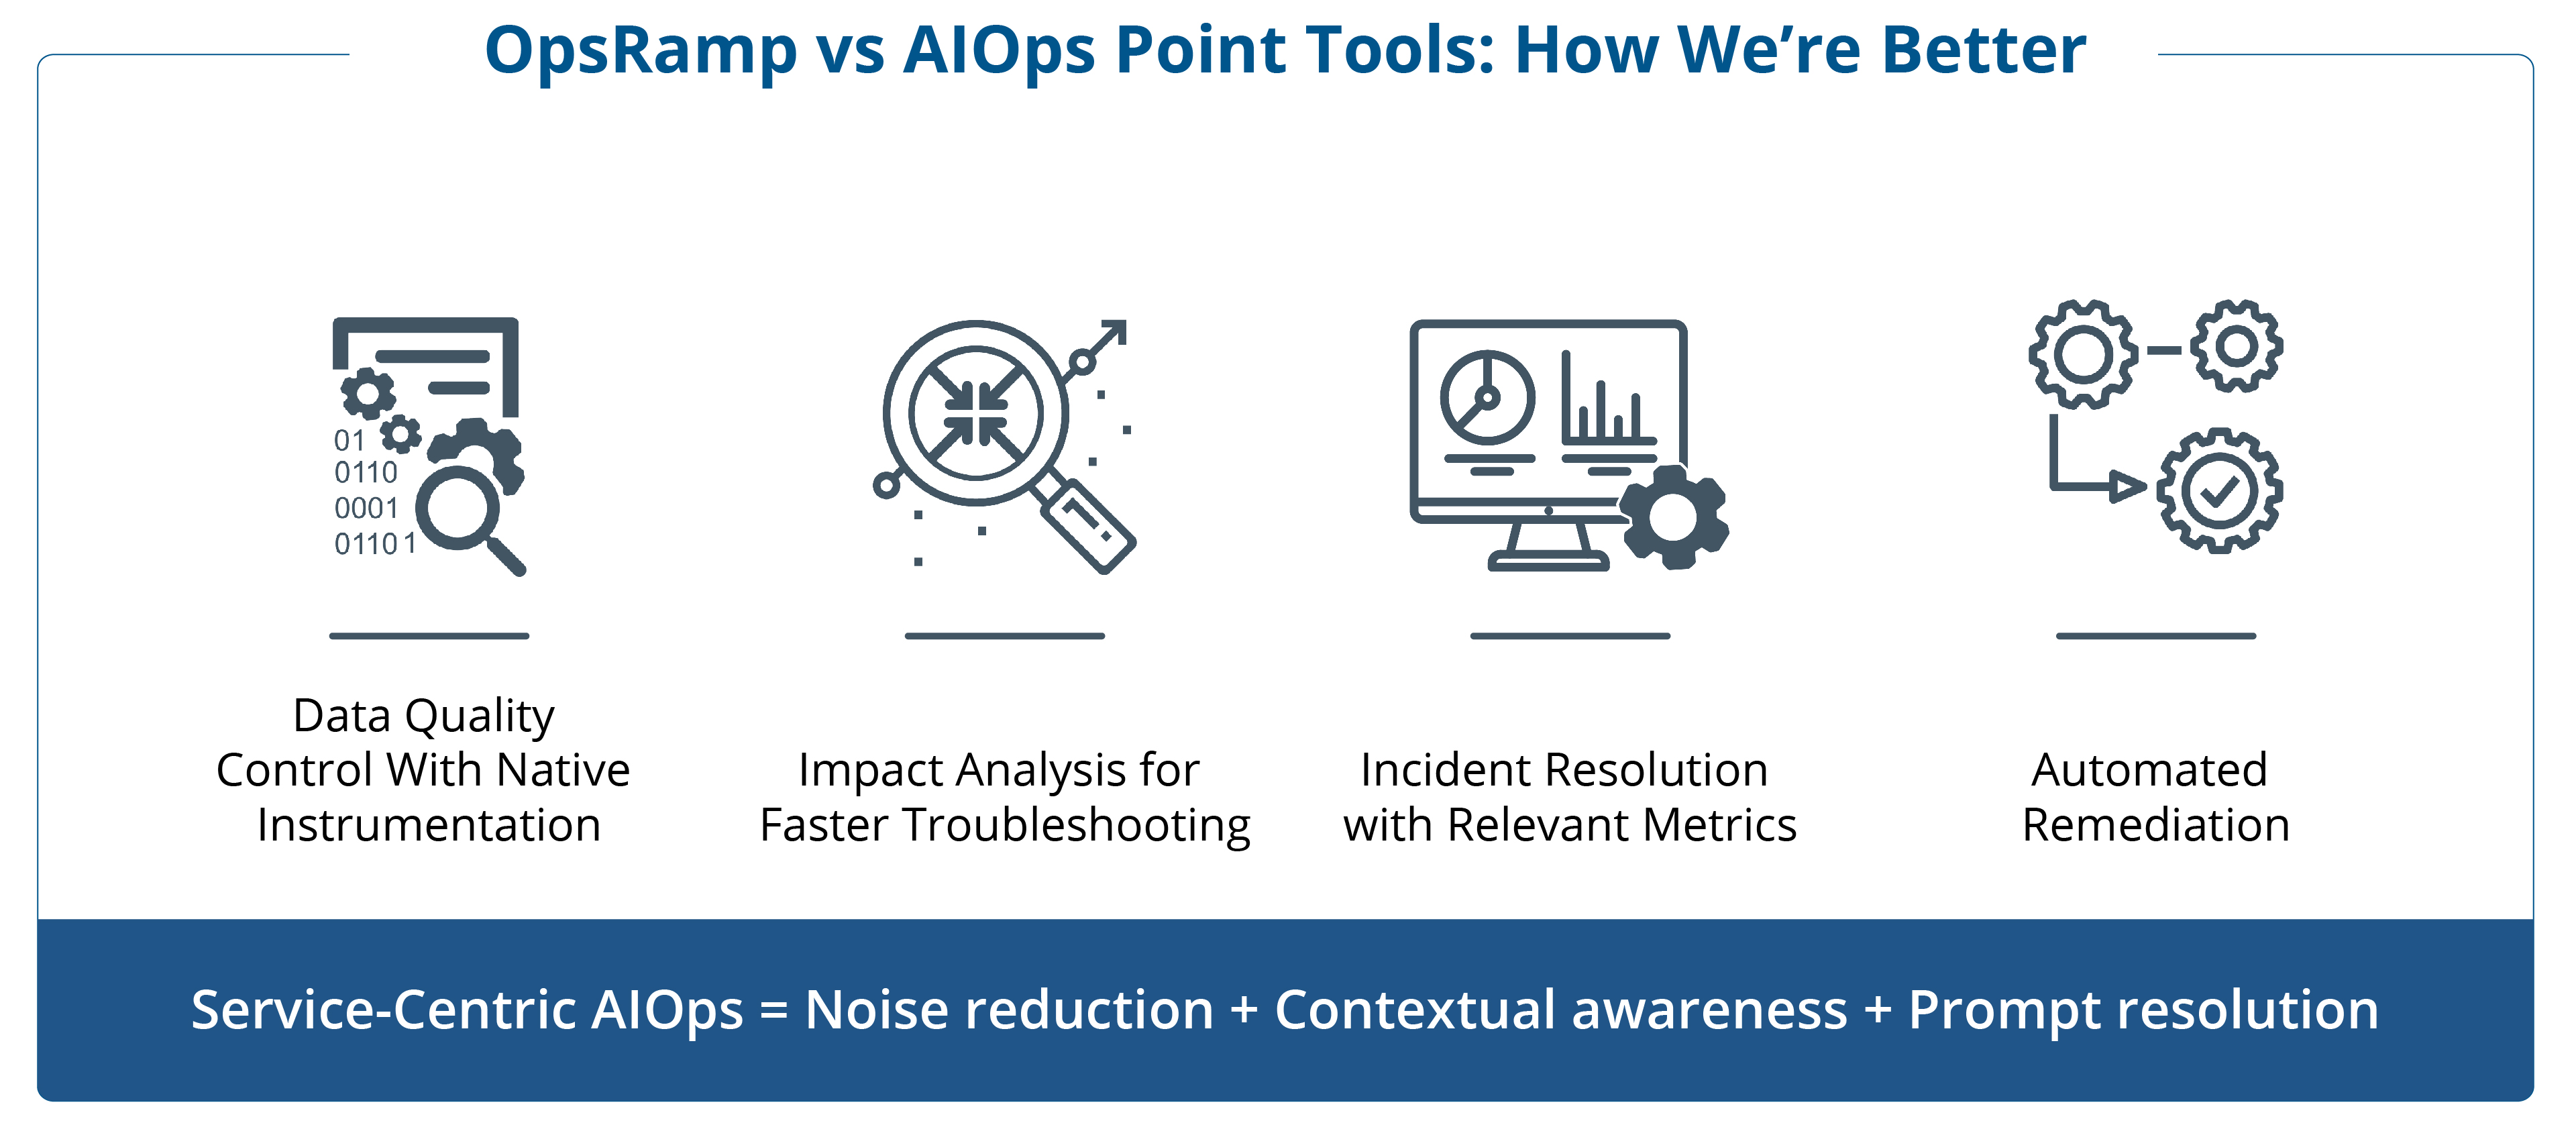 Service-Centric AIOps